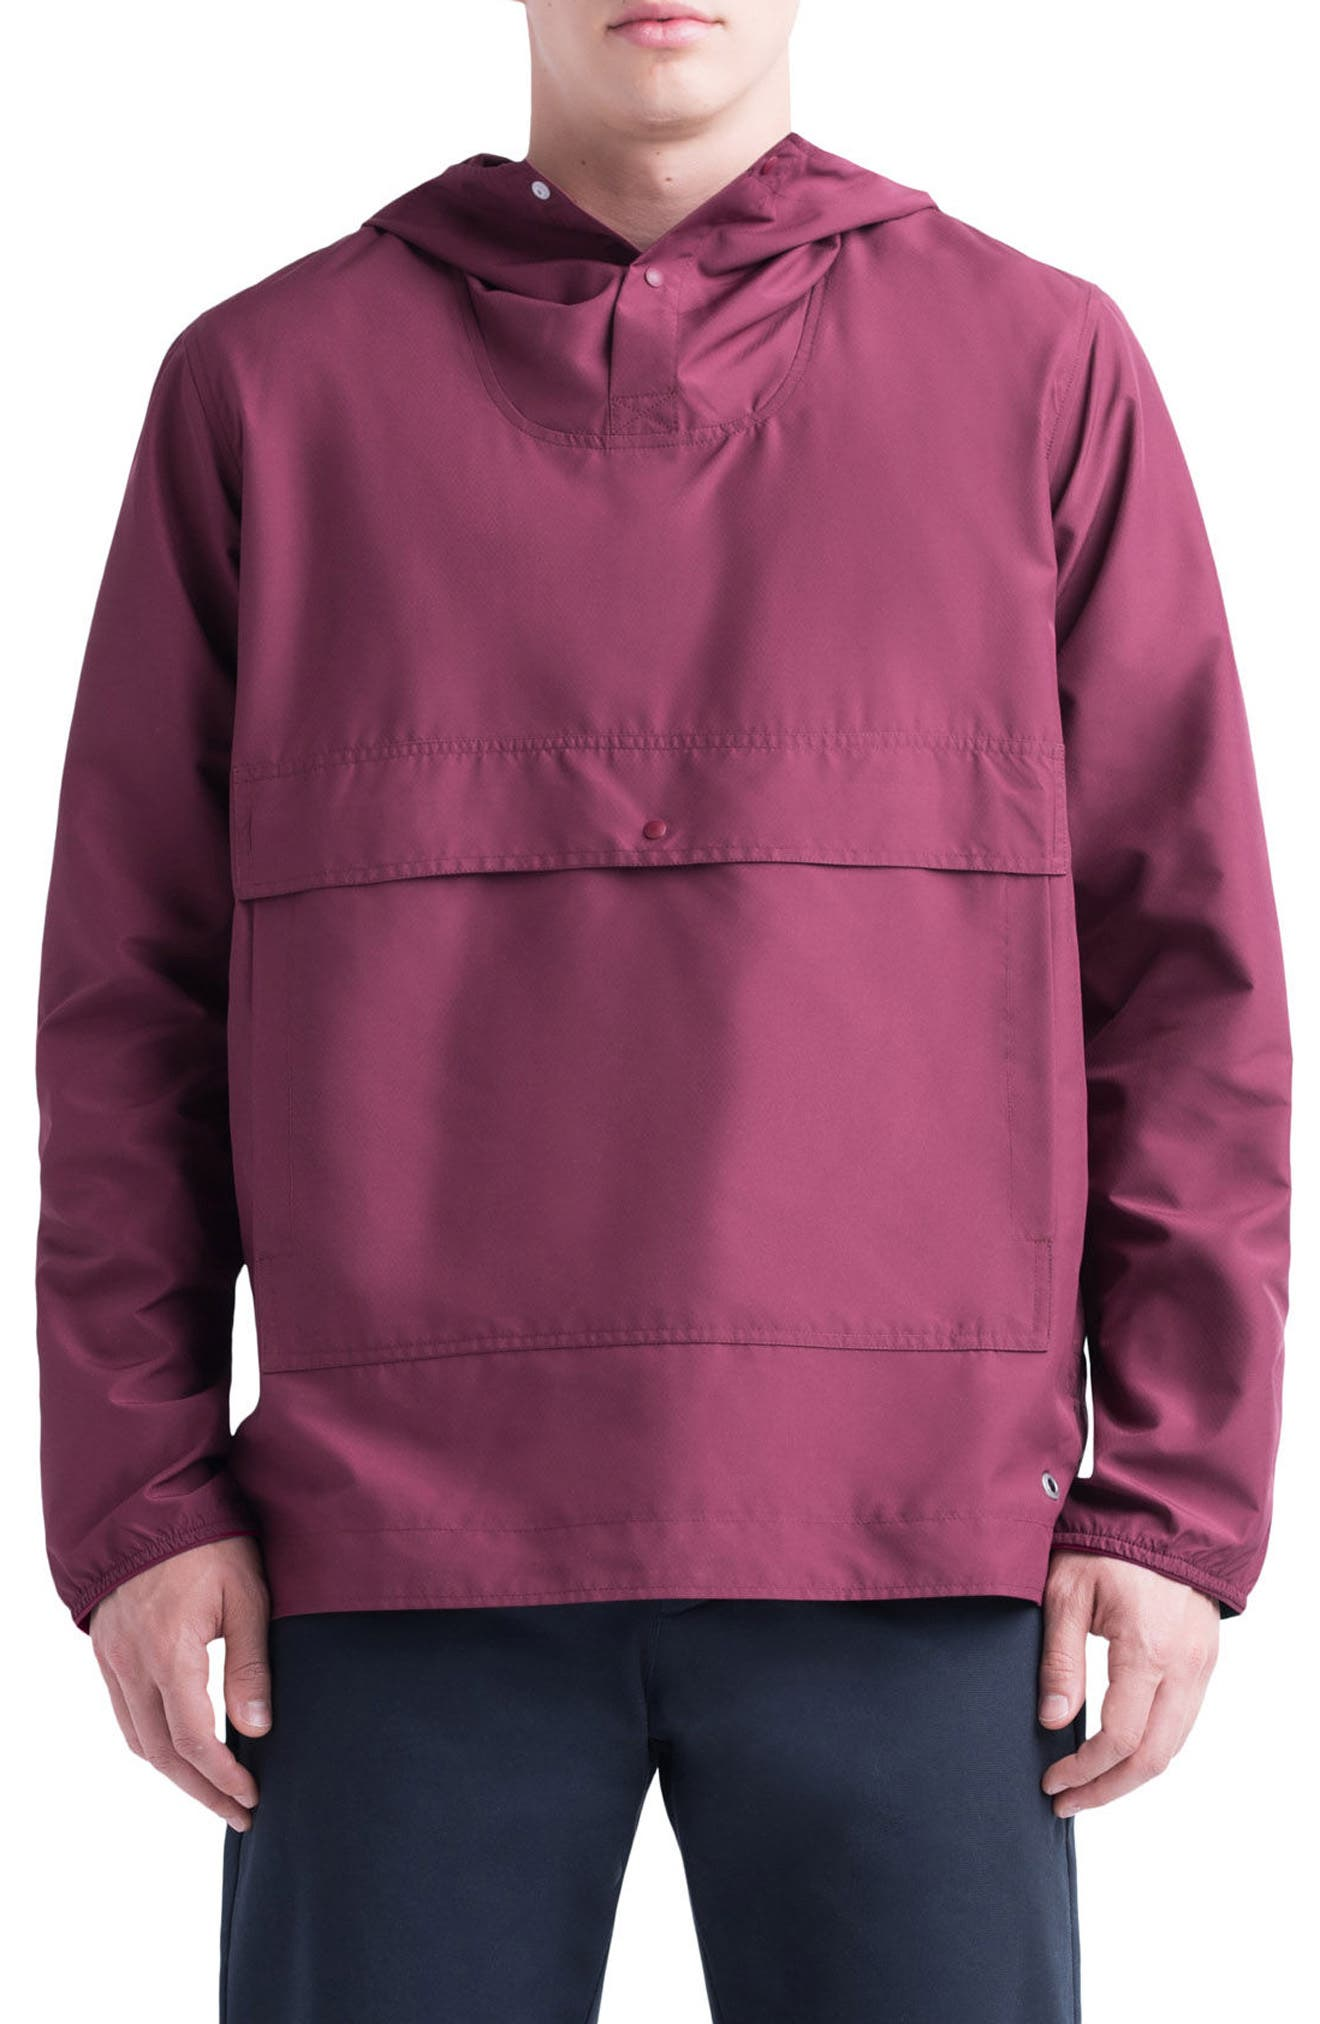 Cheap For Cheap Cost For Sale COATS & JACKETS - Jackets Herschel Low Cost Clearance Online 2018 New Cheap Price BDWjy